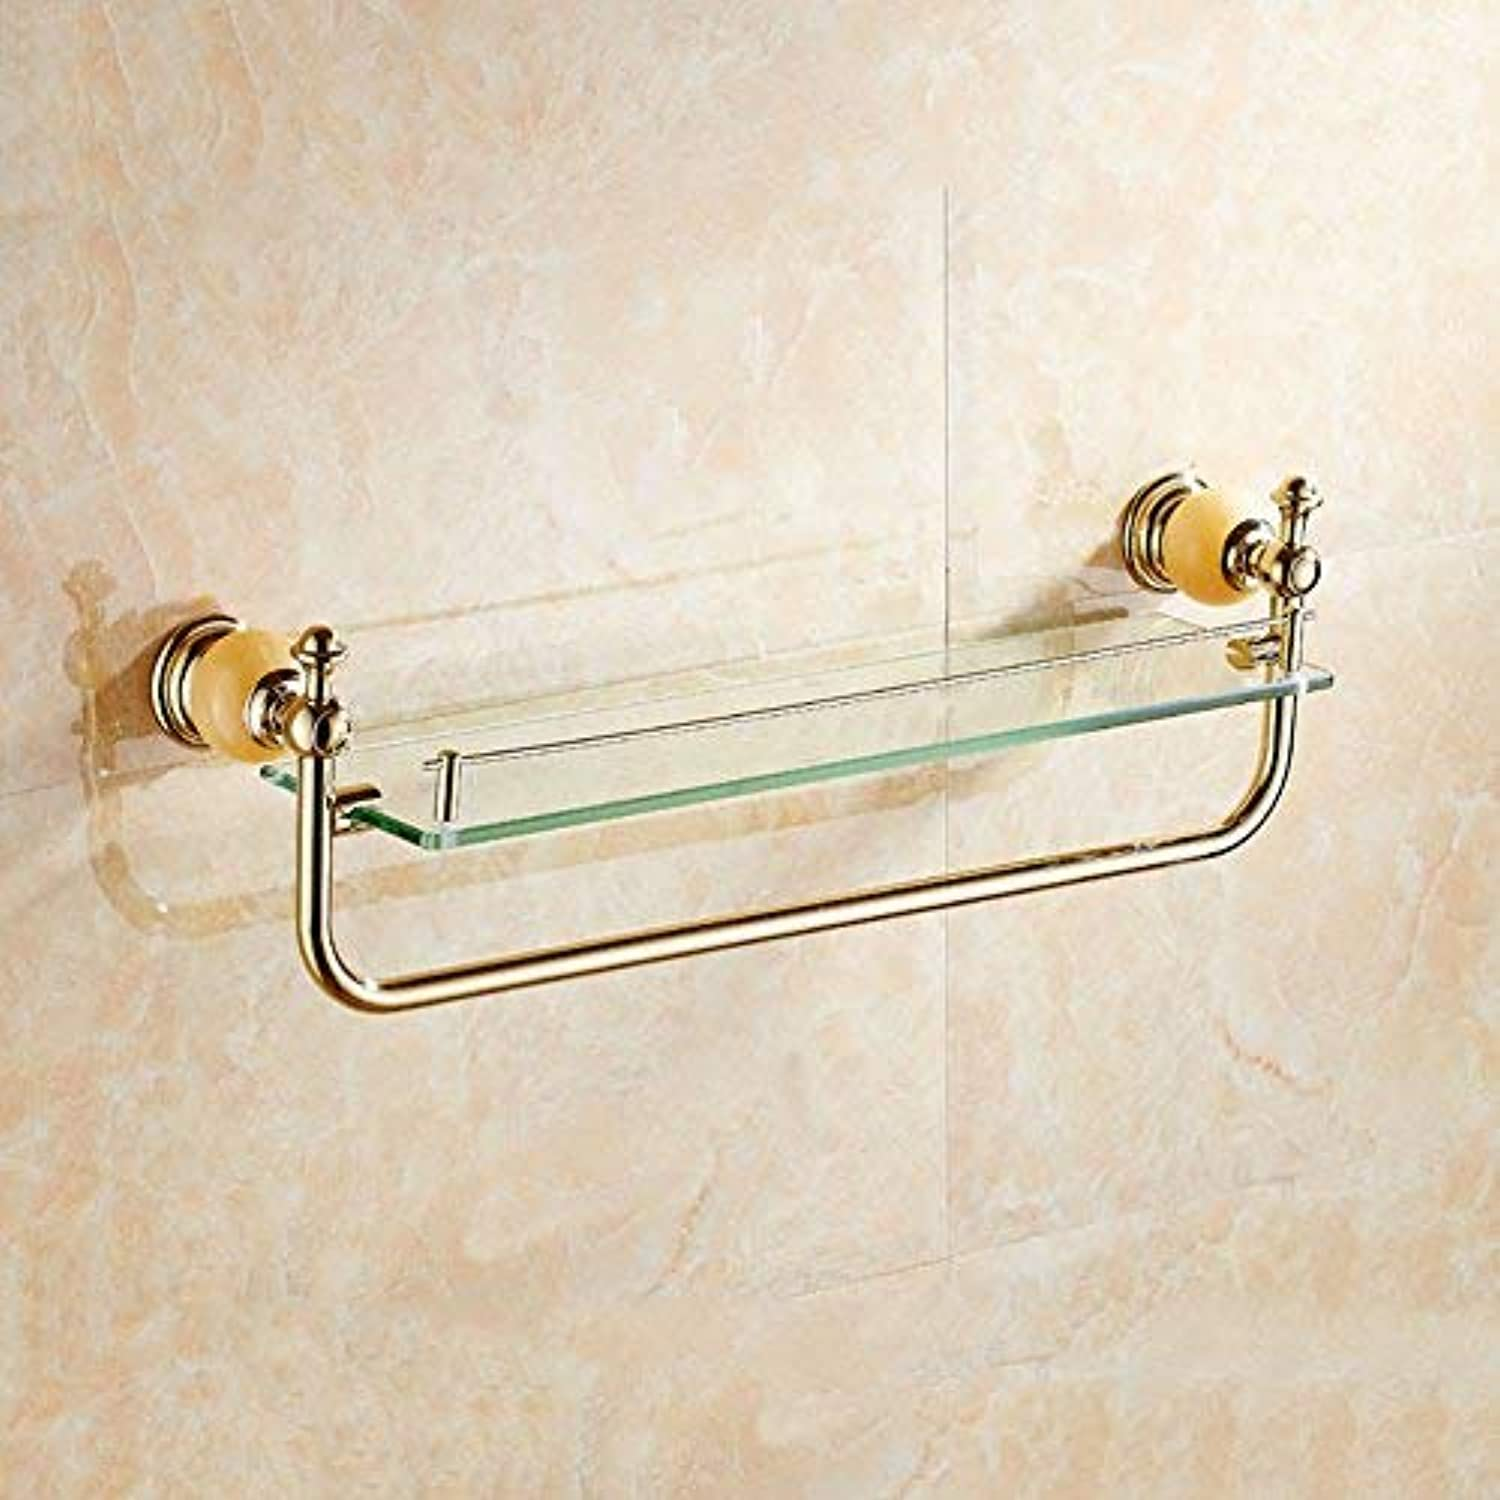 BAIF Bathroom Shelf Copper+Topaz Material 6mm Tempered Glass golden Easy to Clean